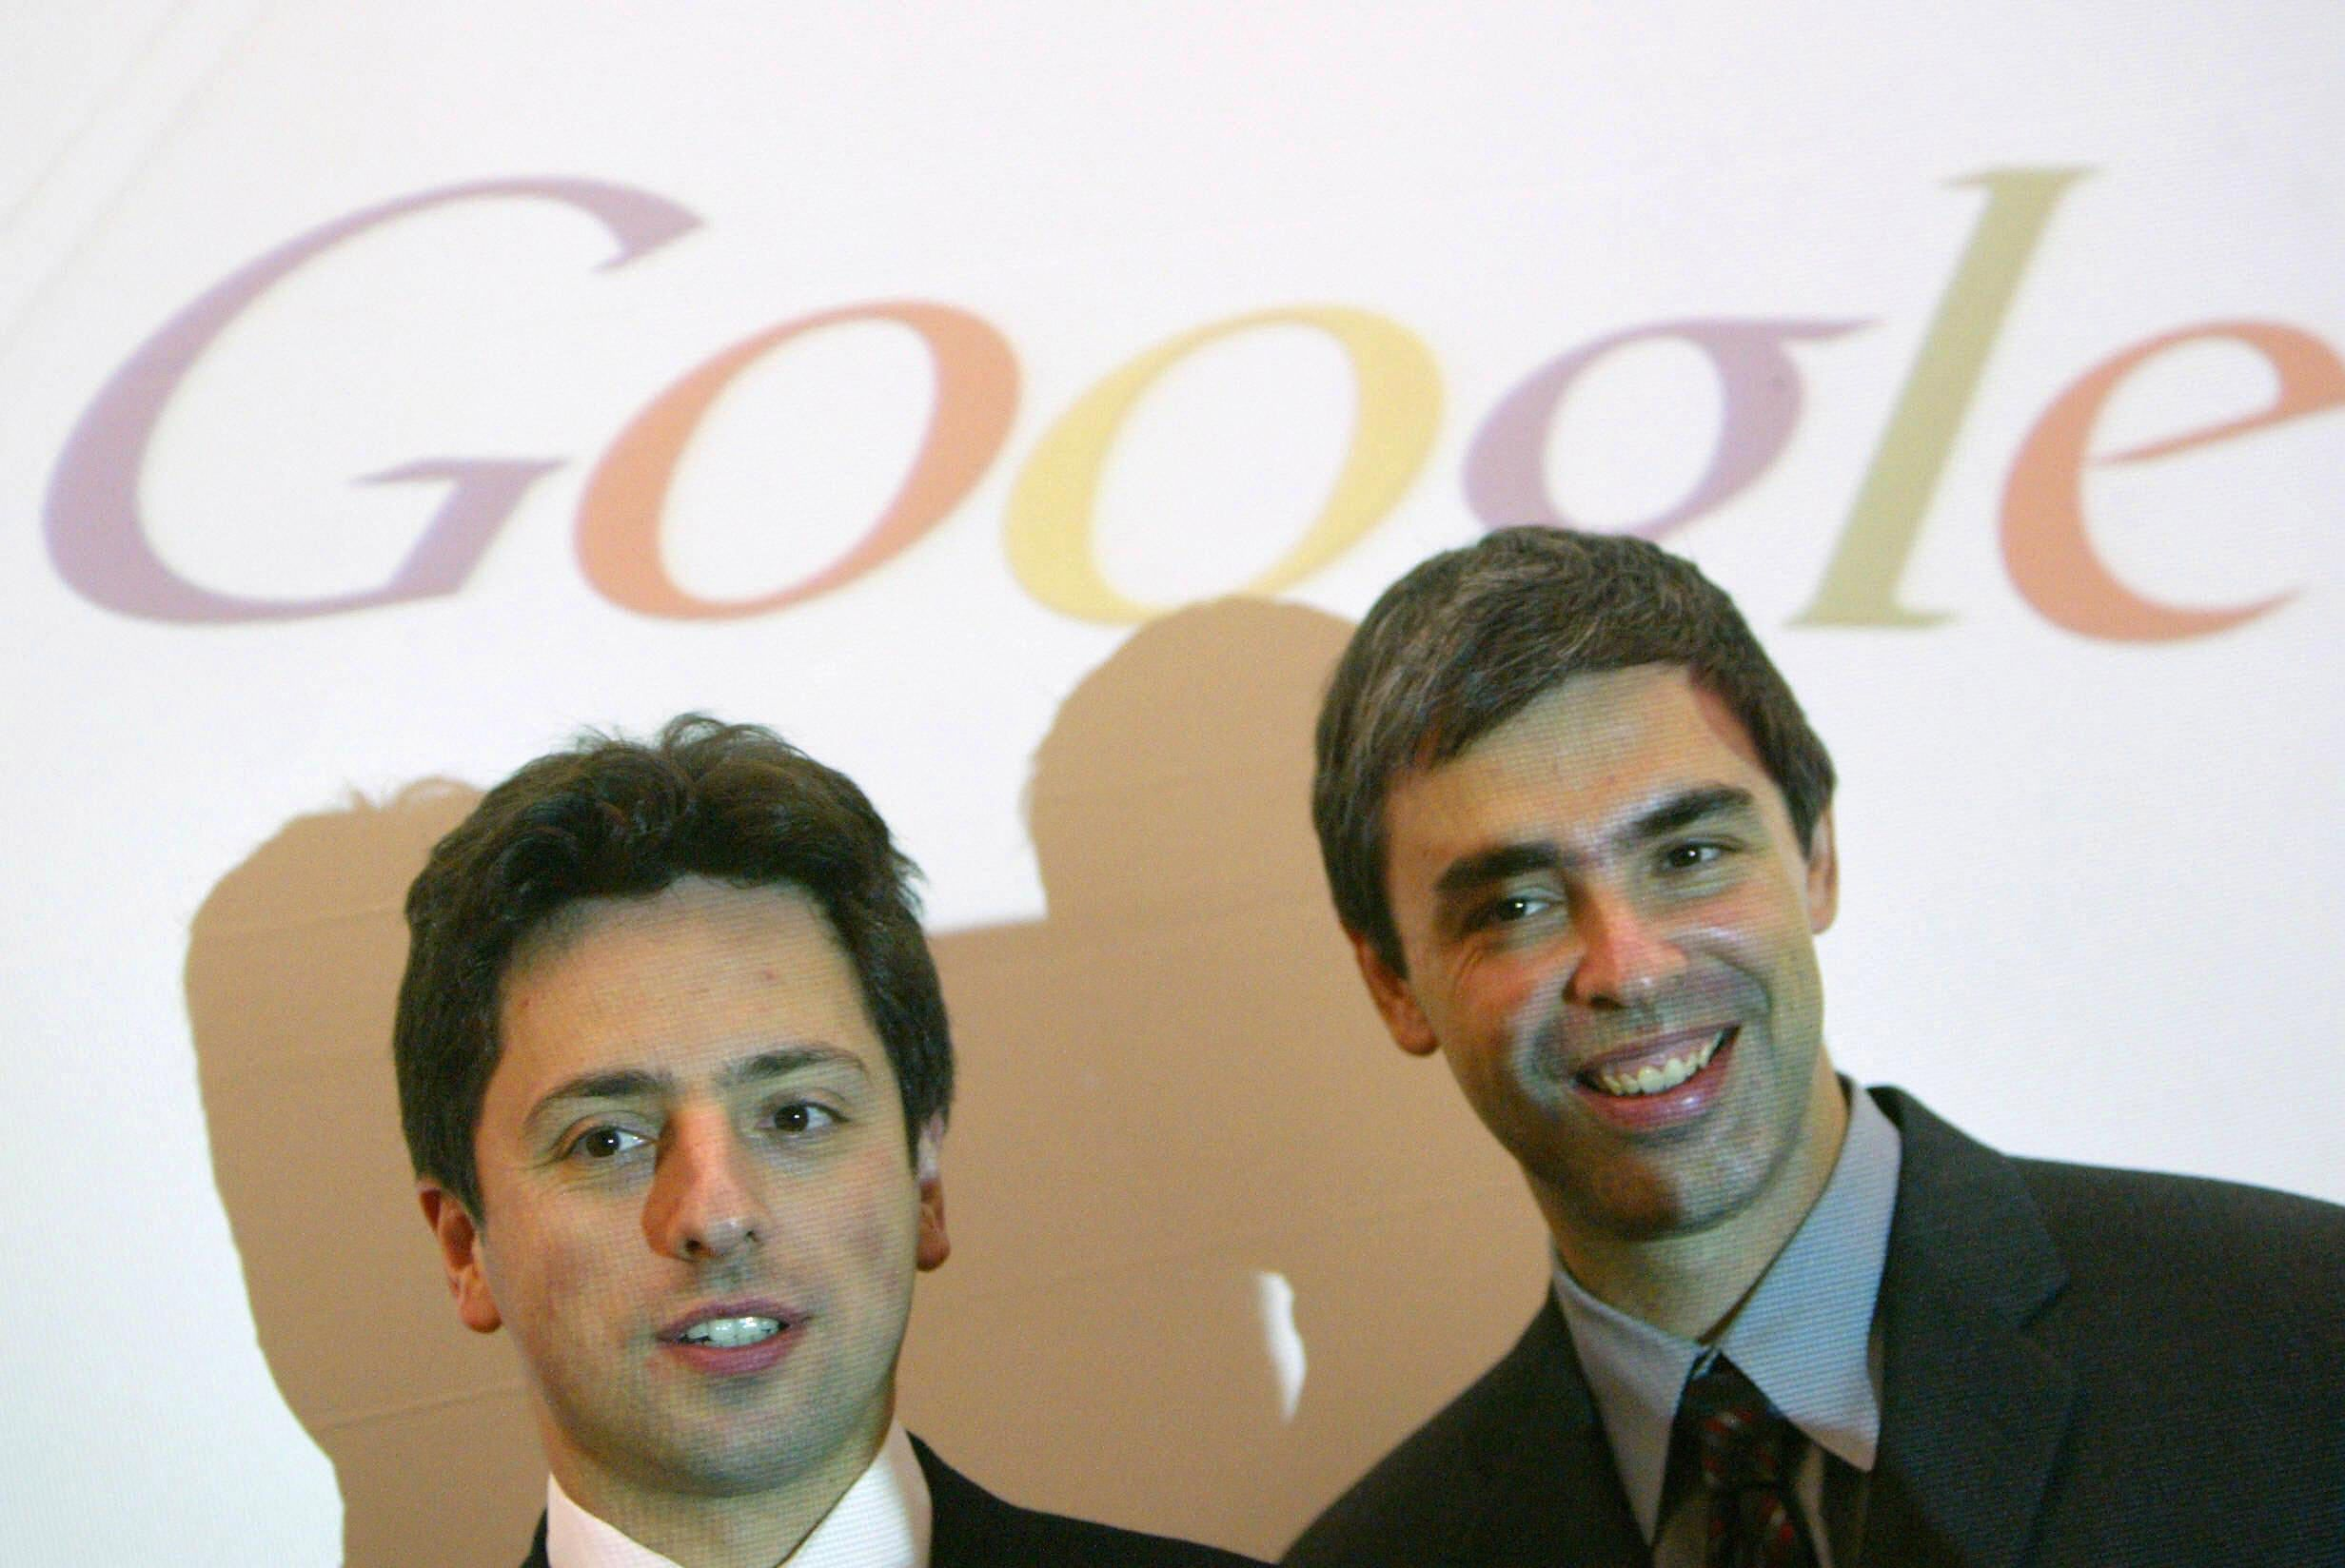 Google co-founders Sergey Brin, left, and Larry Page.